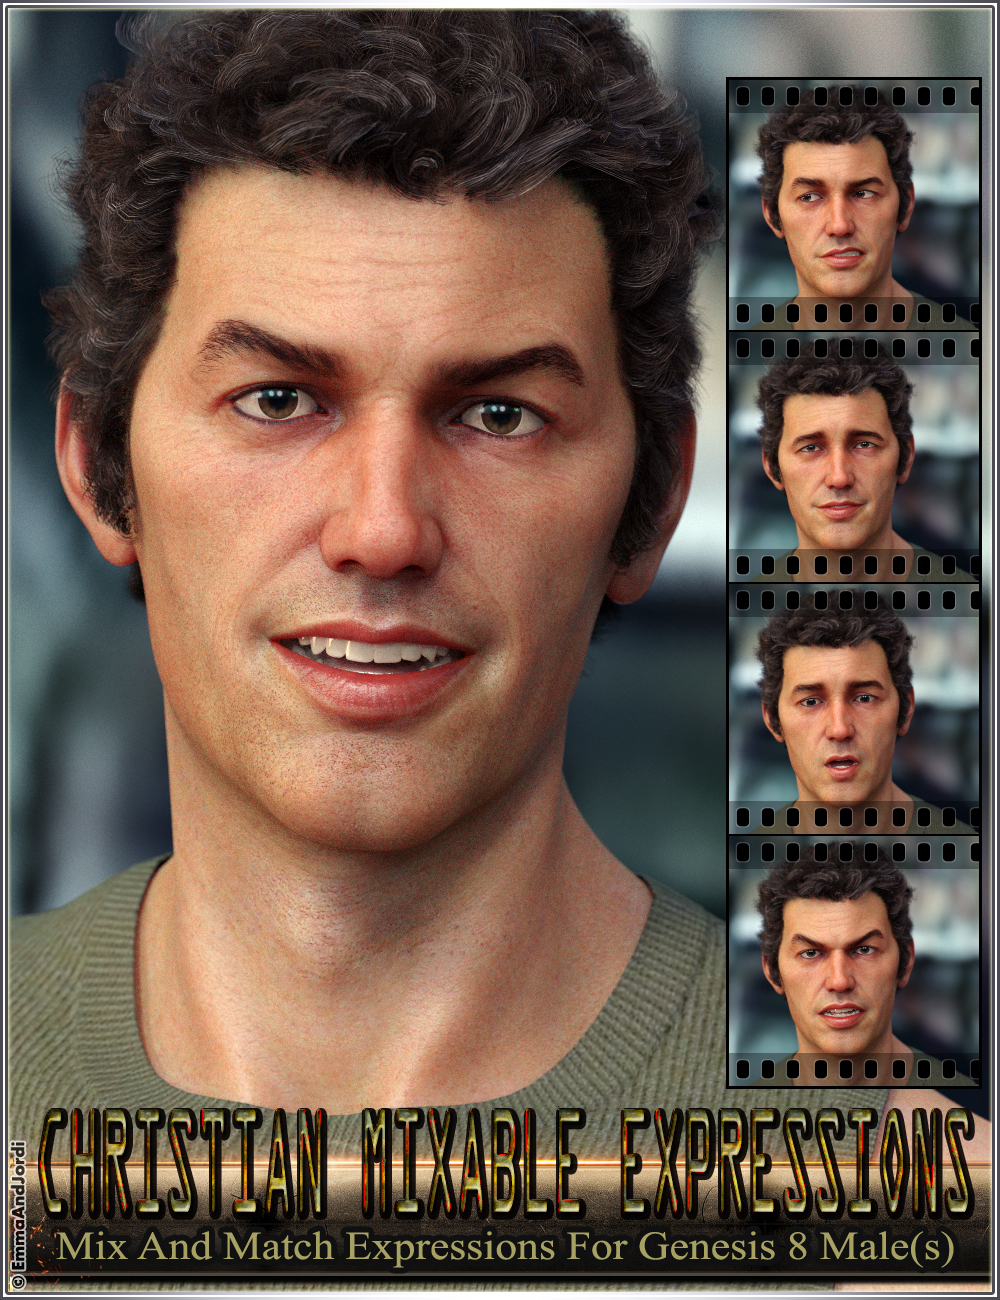 Christian Mixable Expressions for Genesis 8 Male(s) by: EmmaAndJordi, 3D Models by Daz 3D